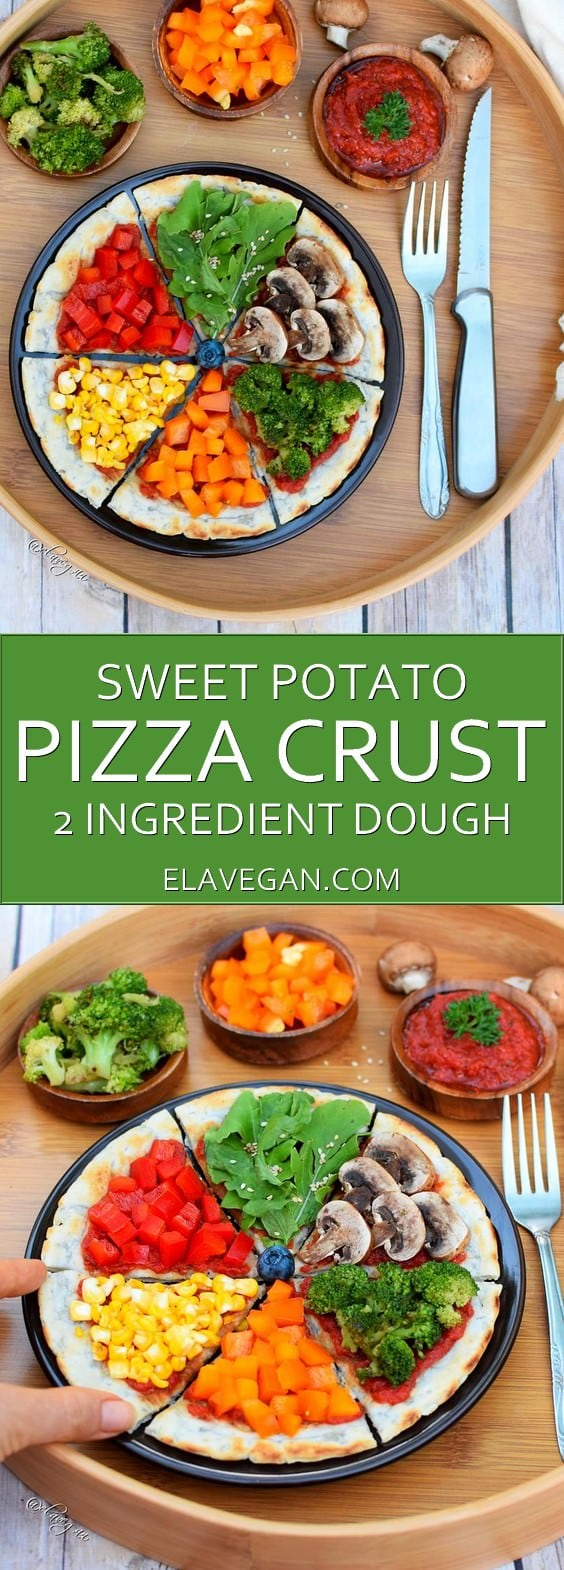 sweet potato pizza crust pinterest